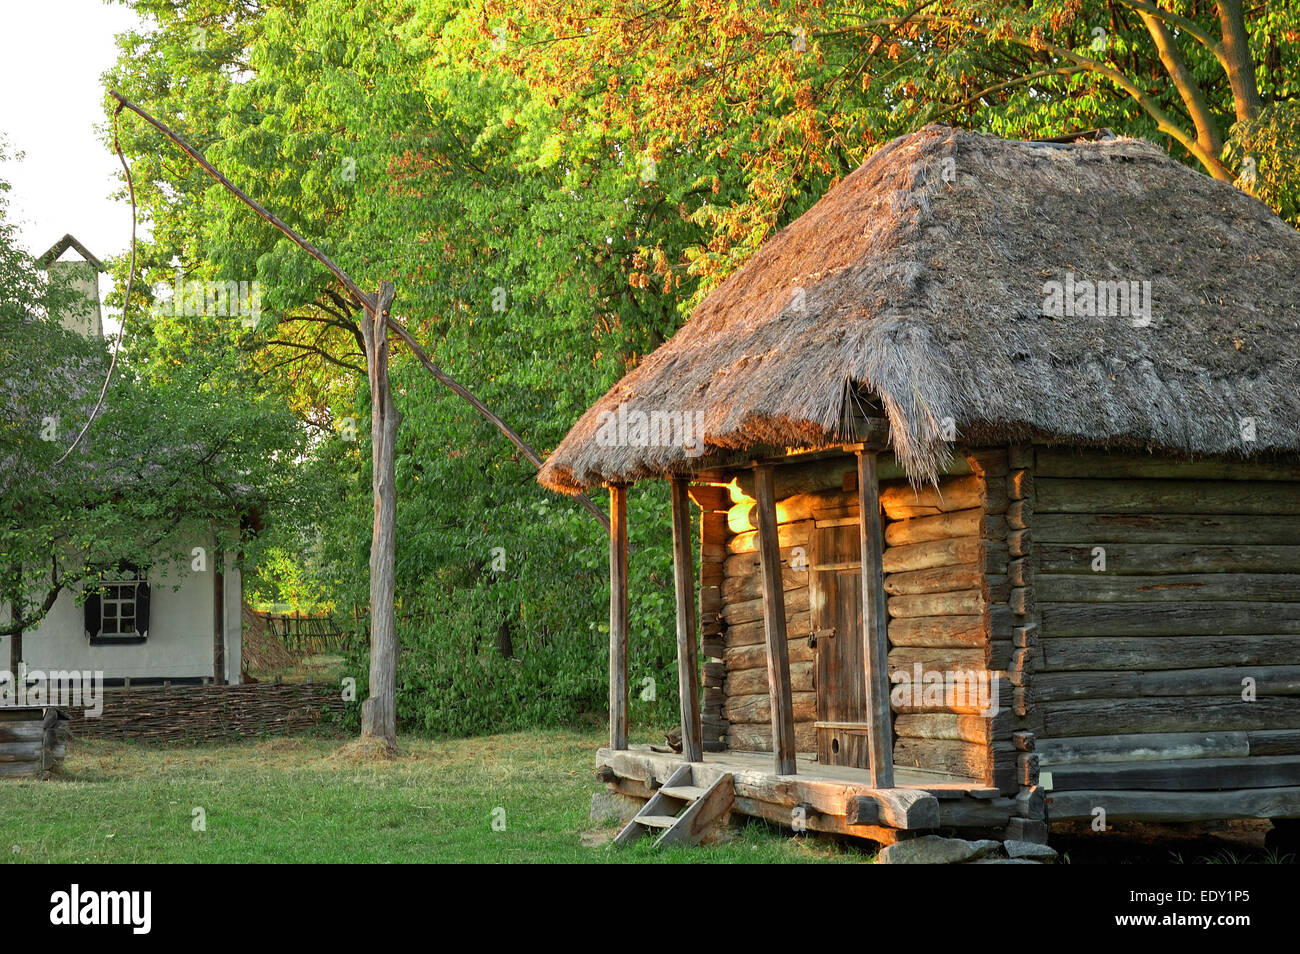 evening on the yard with wooden house - Stock Image